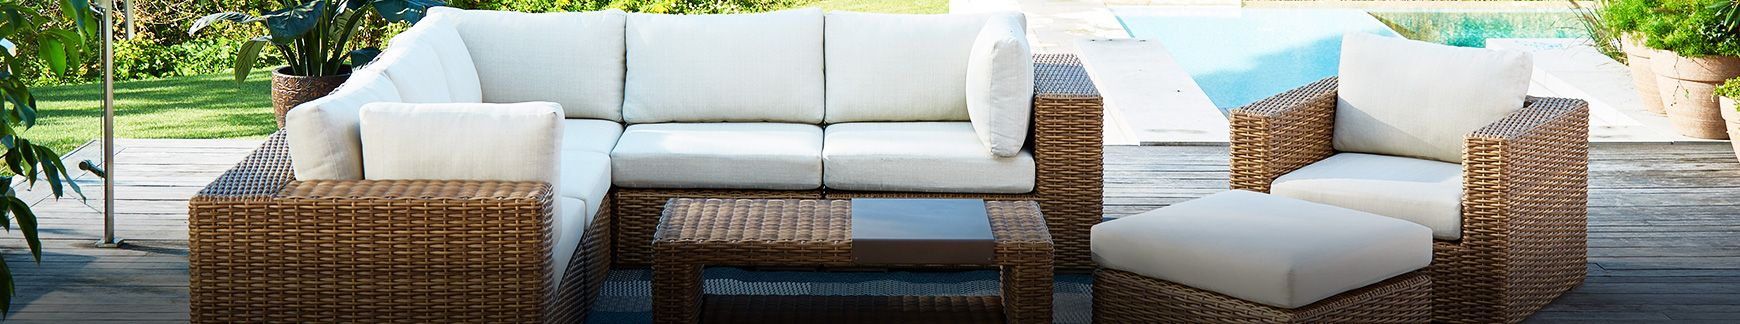 patio lounge furniture canadian tire